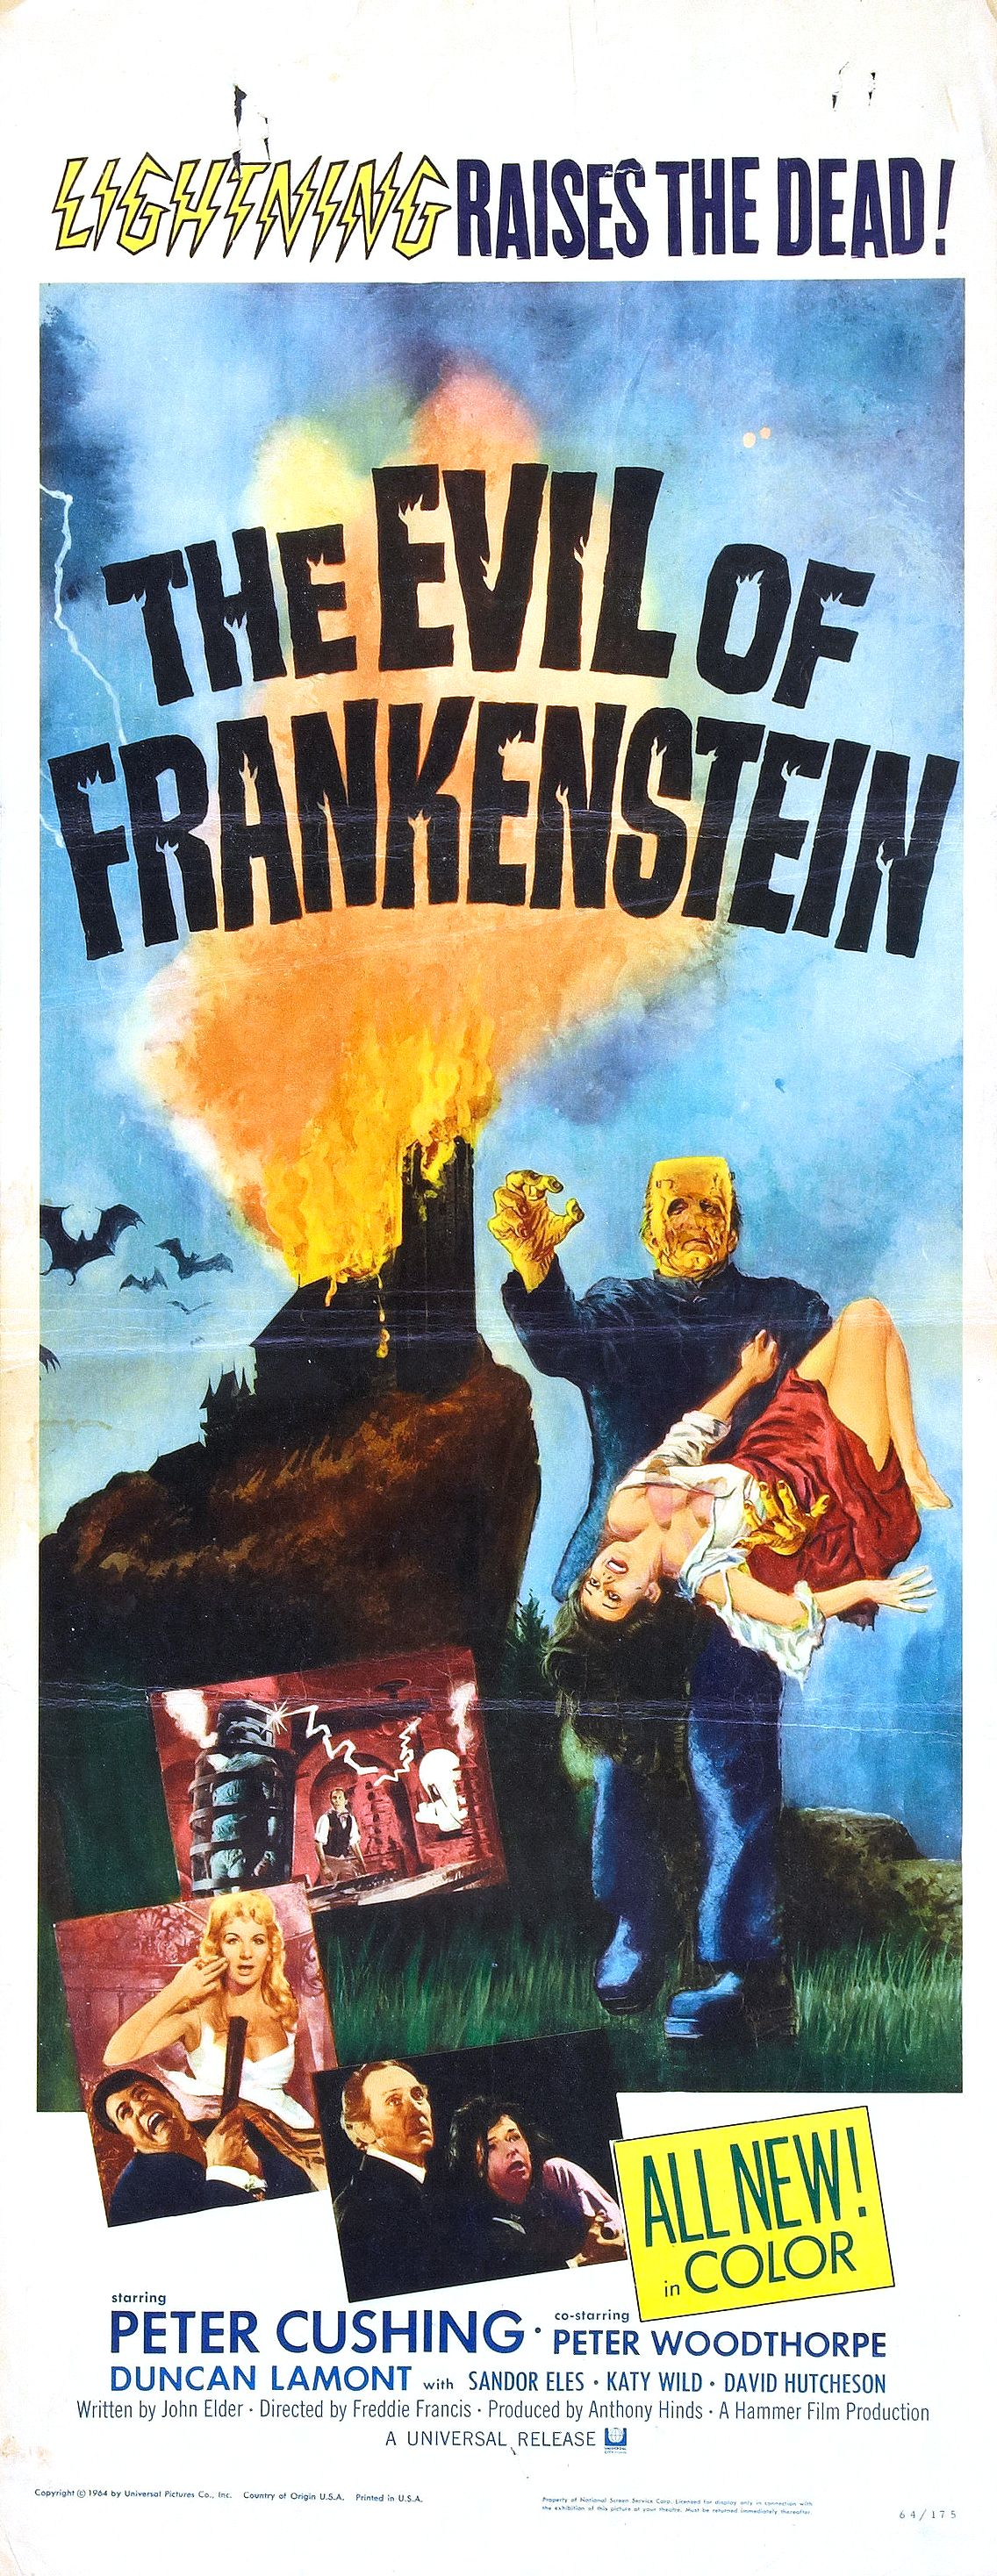 Movie Poster for &quotThe Evil of Frankenstein""